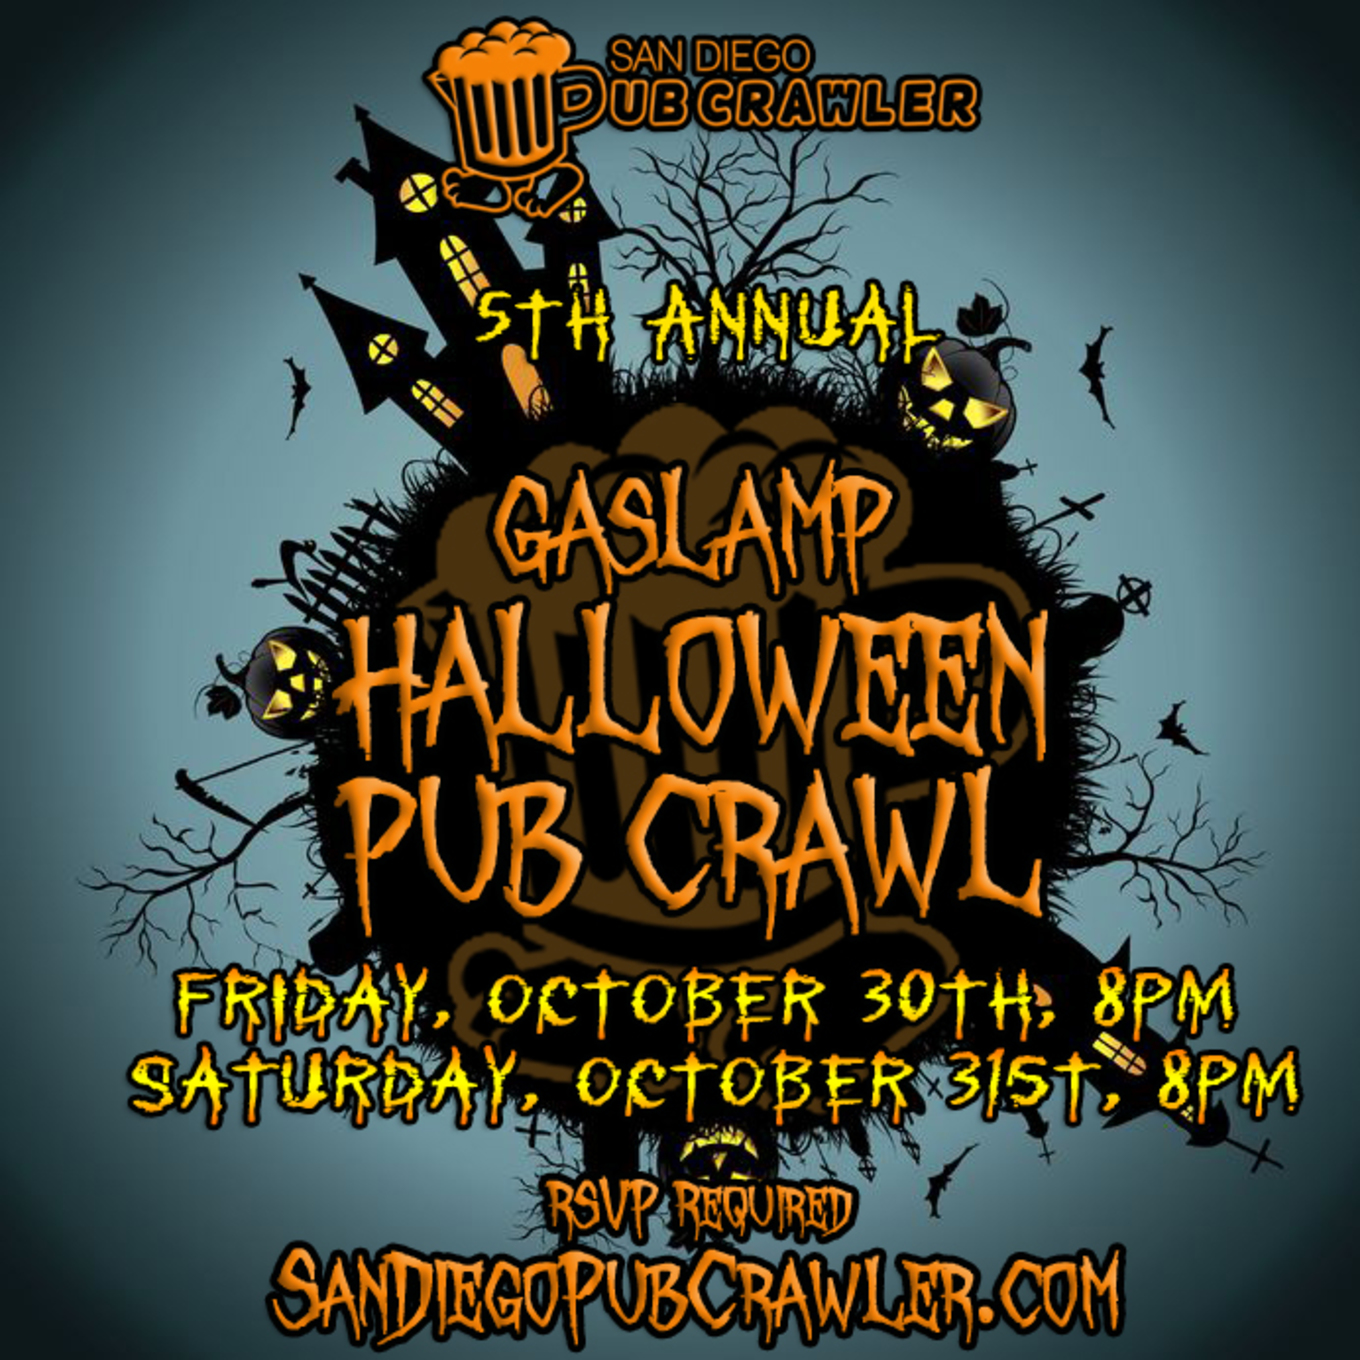 5th Annual Halloween Pub Crawl